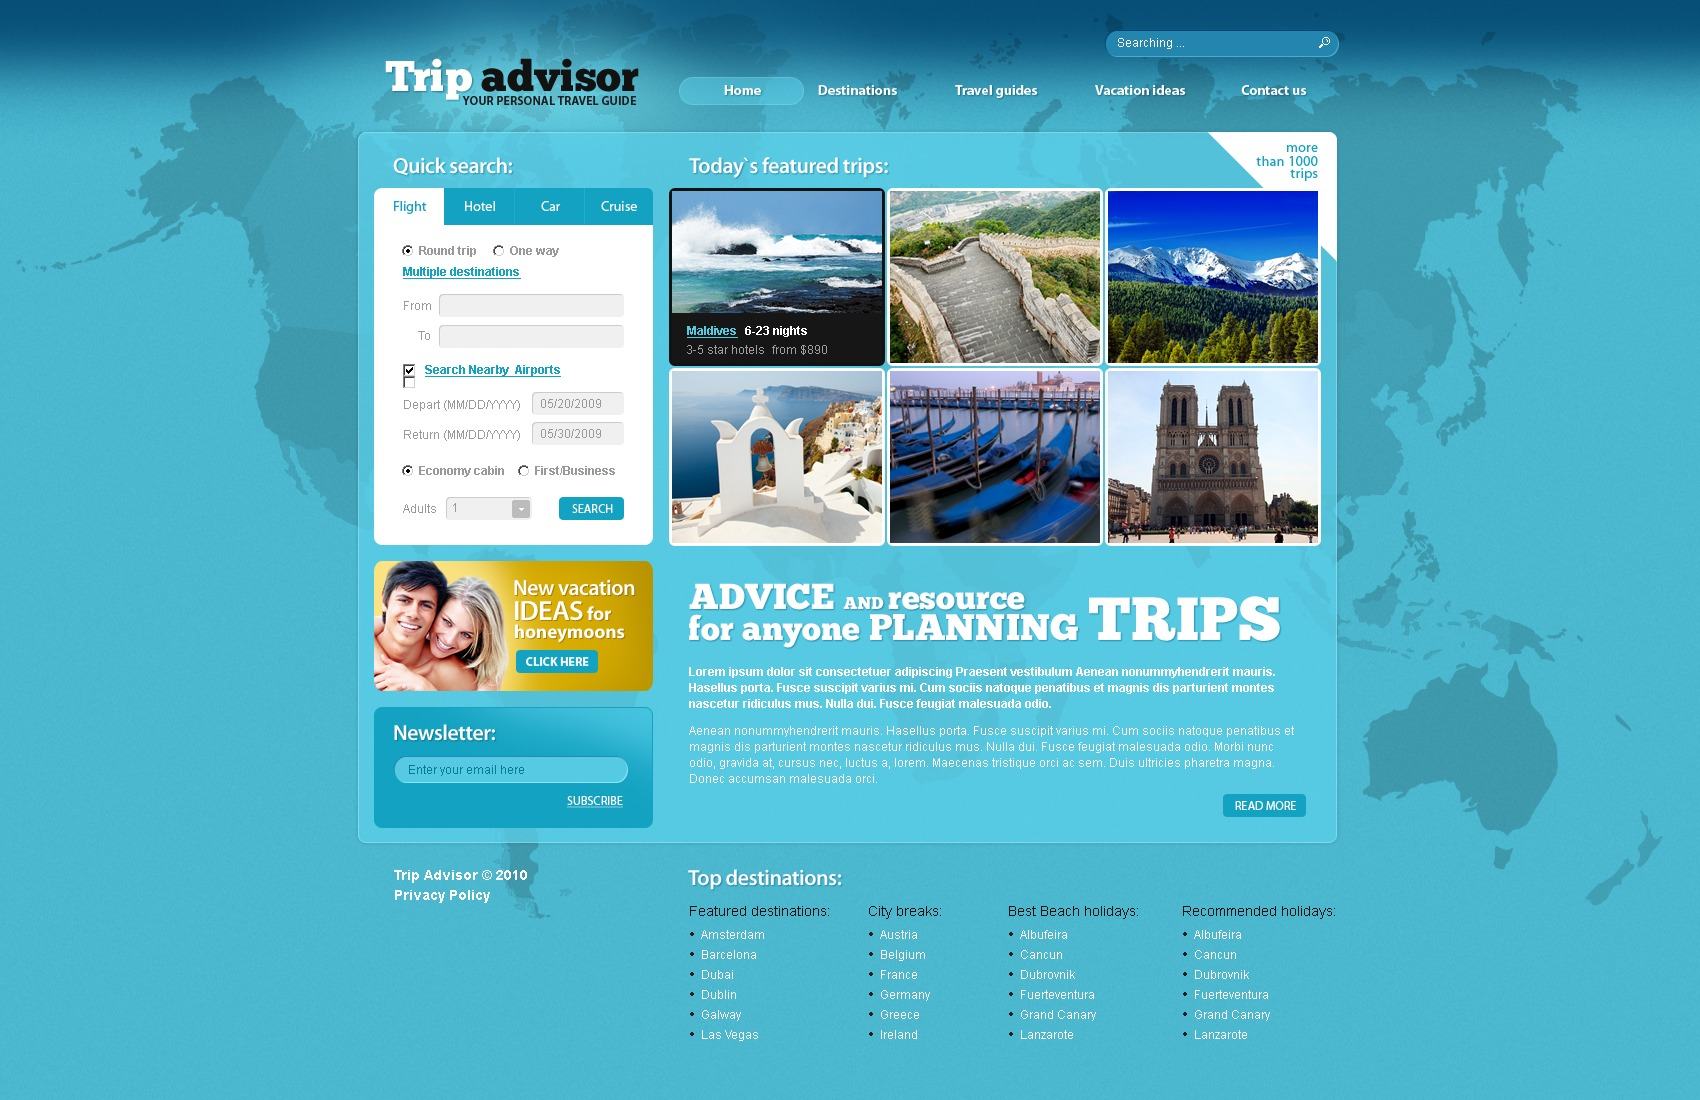 The Trip Advisor PSD Design 54281, one of the best PSD templates of its kind (travel, wide, jquery), also known as trip advisor PSD template, travel PSD template, expert agency PSD template, compass PSD template, tour country PSD template, resort PSD template, spa PSD template, flight hotel PSD template, car PSD template, rental PSD template, cruise PSD template, sights PSD template, reservation PSD template, location PSD template, authorization PSD template, ticket PSD template, guide PSD template, beach PSD template, sea PSD template, relaxation PSD template, recreation PSD template, impression PSD template, air PSD template, liner PSD template, traveling PSD template, apartment PSD template, vacation PSD template, rest PSD template, comfort PSD template, destinat and related with trip advisor, travel, expert agency, compass, tour country, resort, spa, flight hotel, car, rental, cruise, sights, reservation, location, authorization, ticket, guide, beach, sea, relaxation, recreation, impression, air, liner, traveling, apartment, vacation, rest, comfort, destinat, etc.